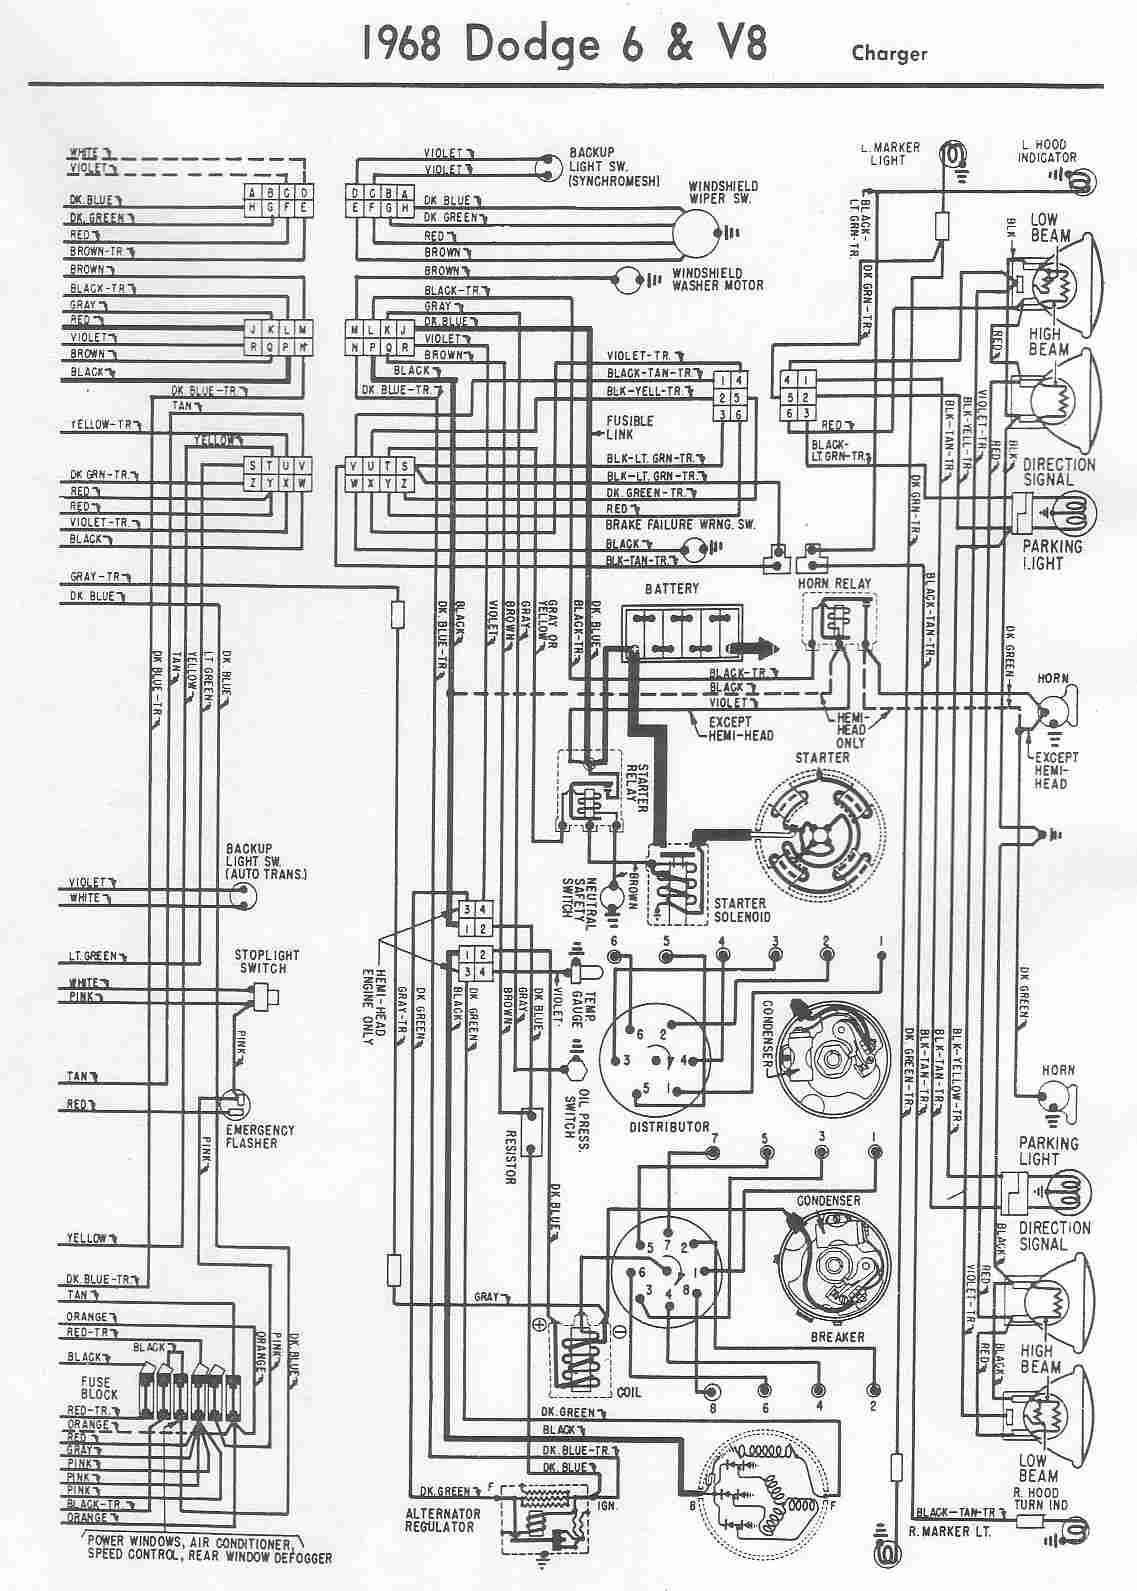 charger electrical wiring diagram of 1968 dodge 6 and v8?t=1508404771 dodge car manuals, wiring diagrams pdf & fault codes 1969 Dodge Super Bee at bakdesigns.co